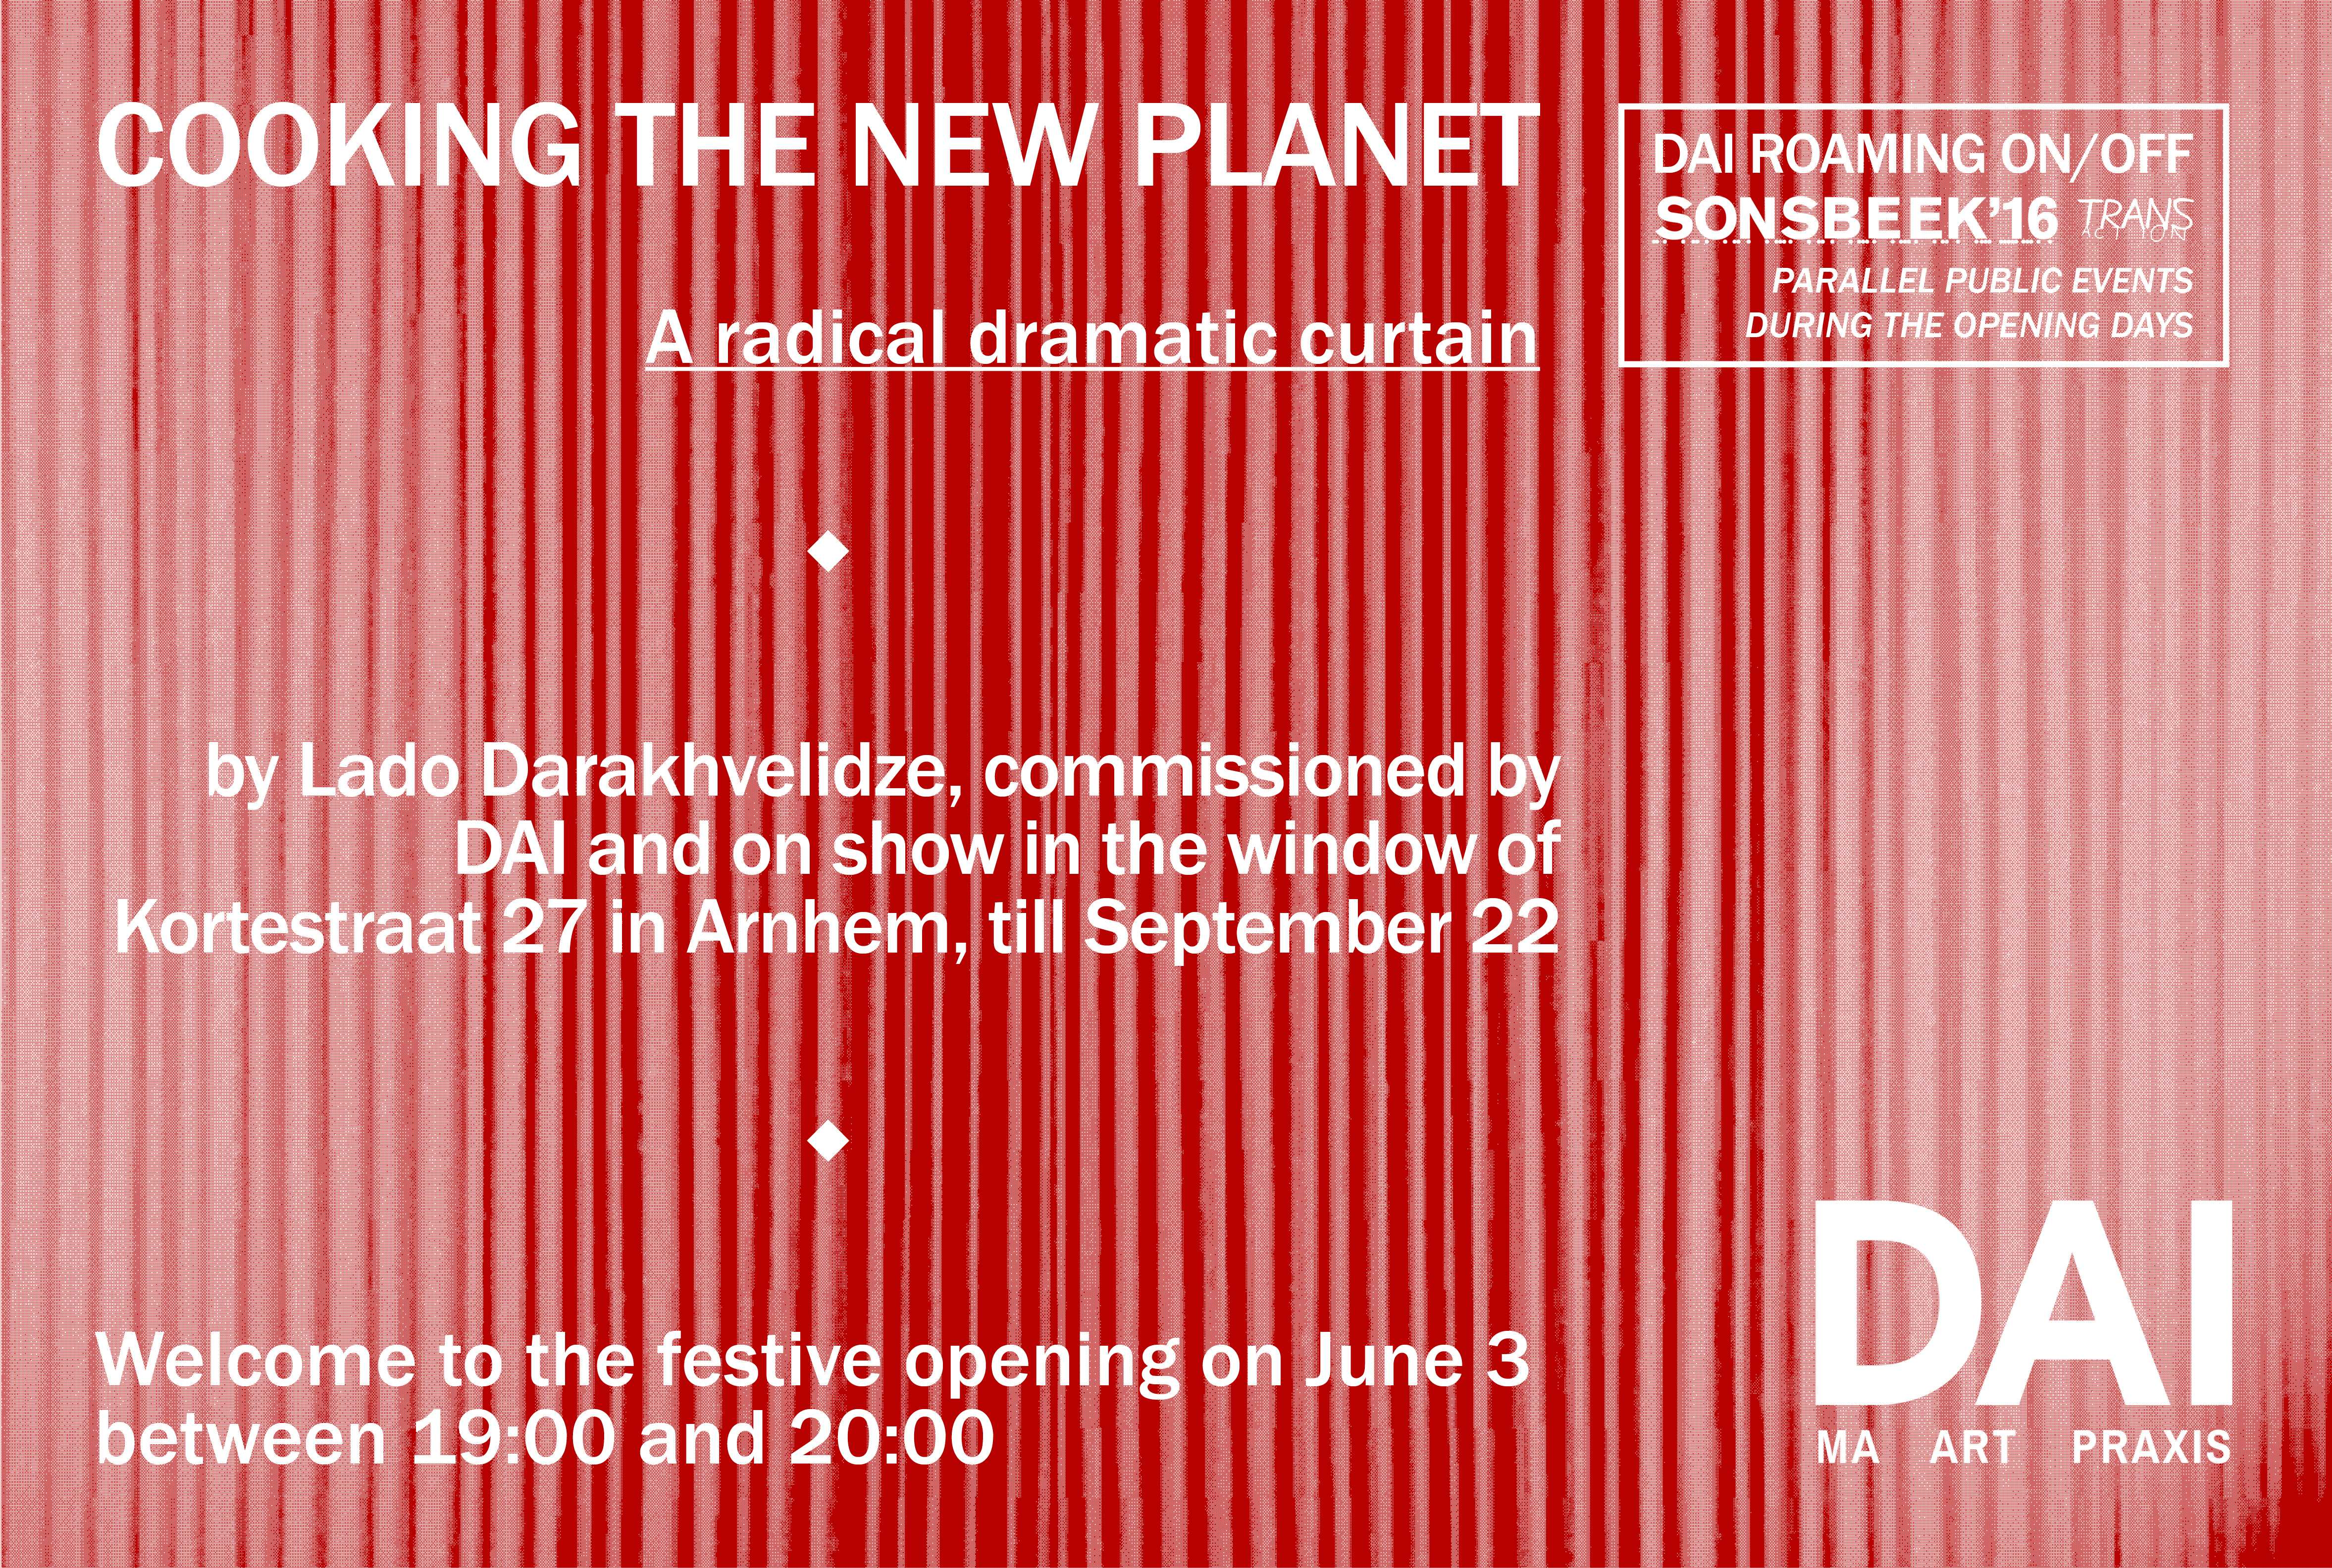 Cooking The New Planet - a radical dramatic curtain. Lado Darakhvelidze